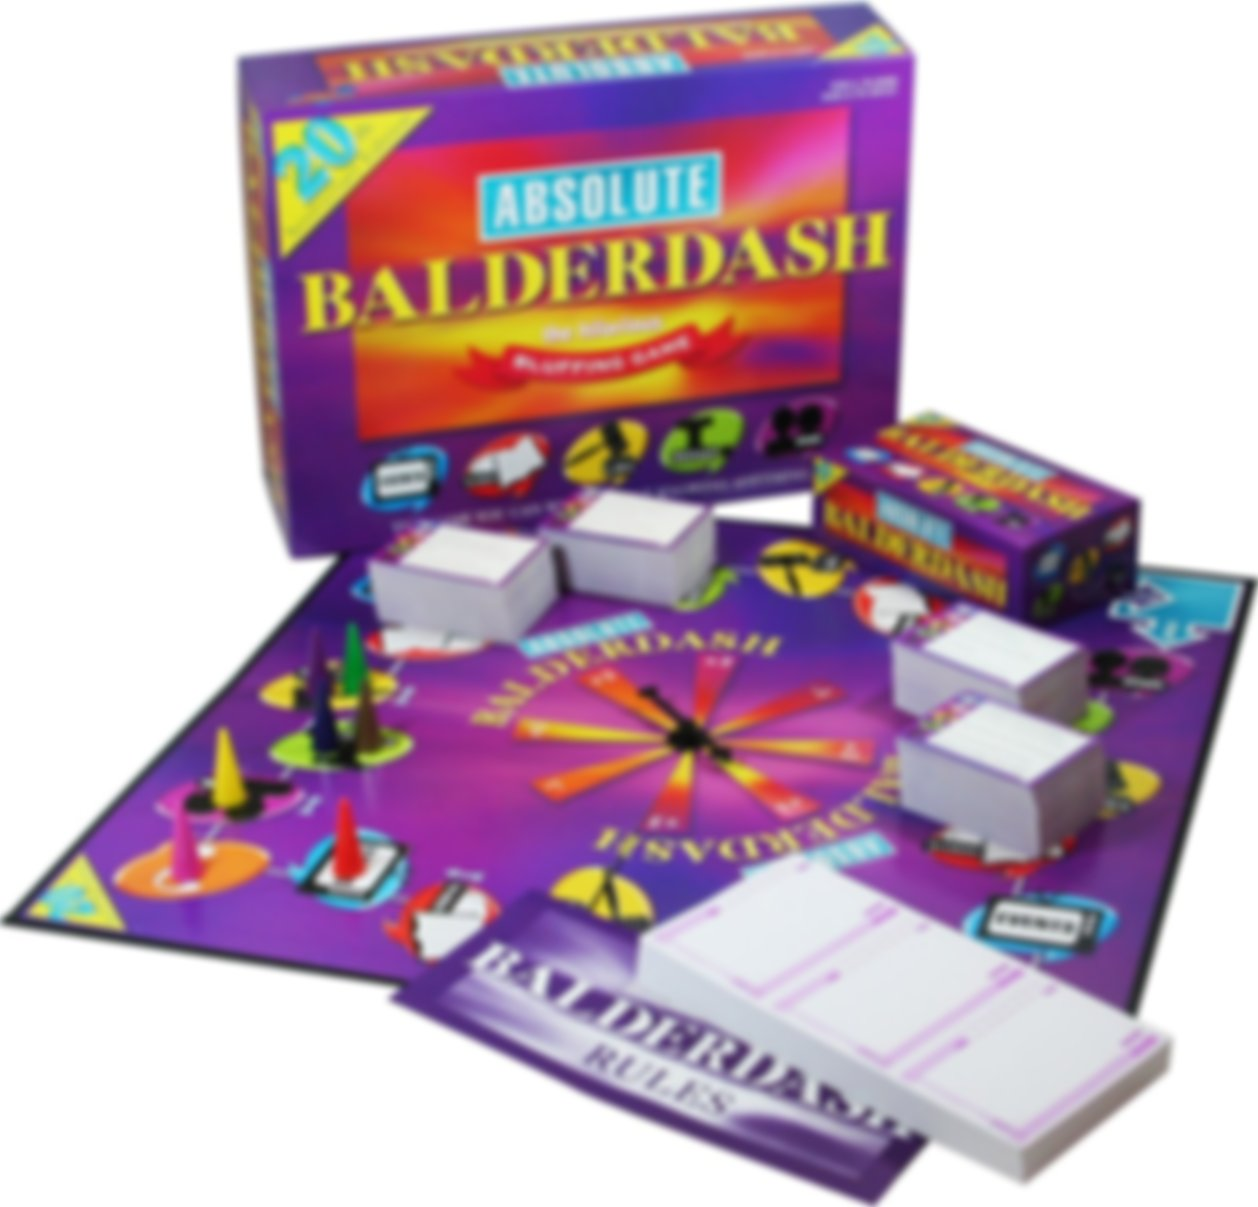 Absolute Balderdash components